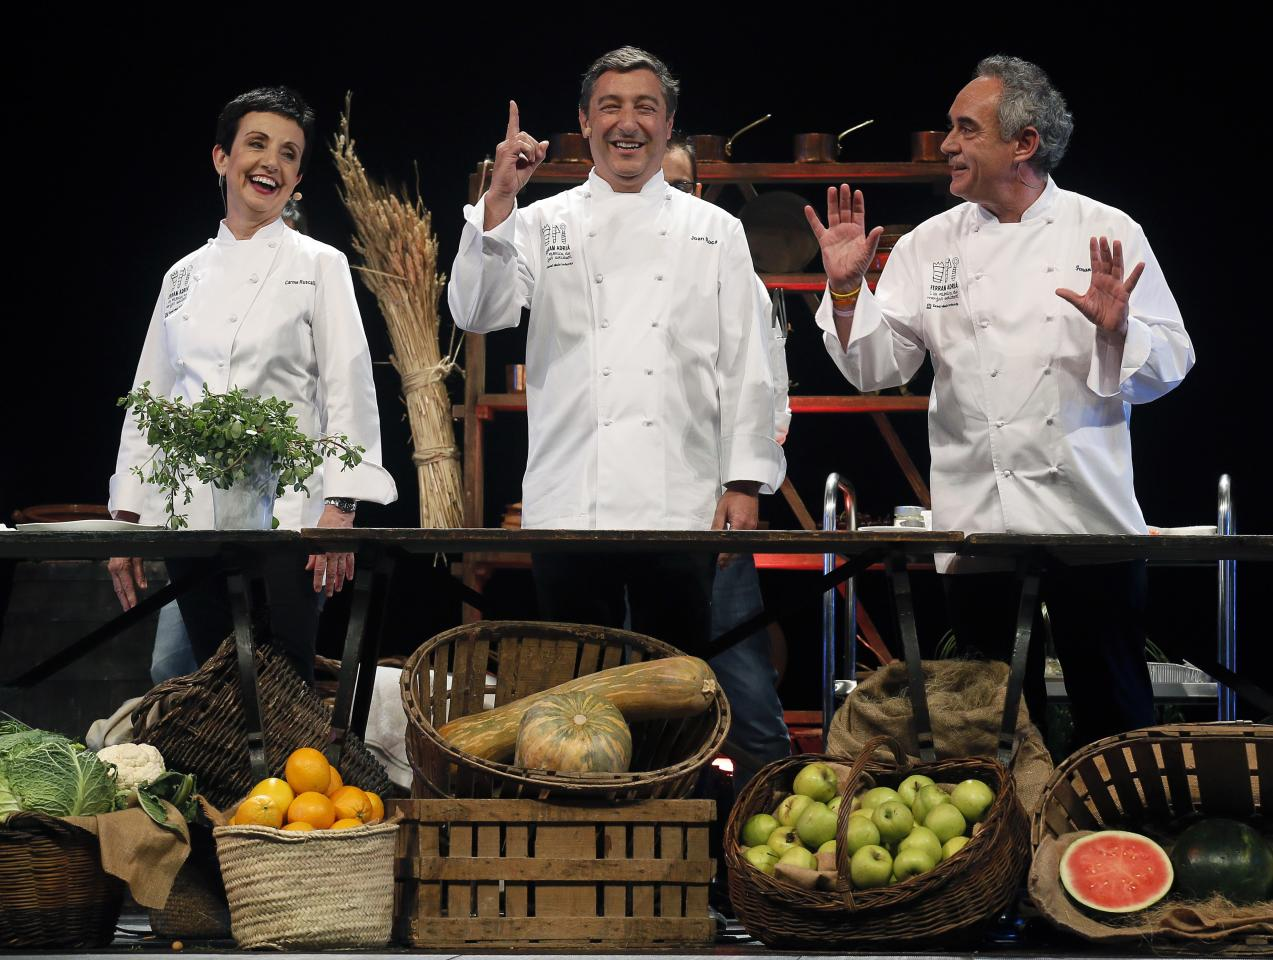 "Spanish chefs Joan Roca (C) of El Celler de Can Roca restaurant, Carme Ruscalleda (L) of Sant Pau restaurant and Ferran Adria (R) of El Bulli restaurant joke during the ""La Fabrica del Menjar Solidari"" (The Factory of the Food Charity) charity show at Liceu theatre in Barcelona June 29, 2014. The proceeds of the show, which is hosted by Adria and includes cooking performances, go to charity. REUTERS/Albert Gea (SPAIN - Tags: ENTERTAINMENT FOOD SOCIETY)"